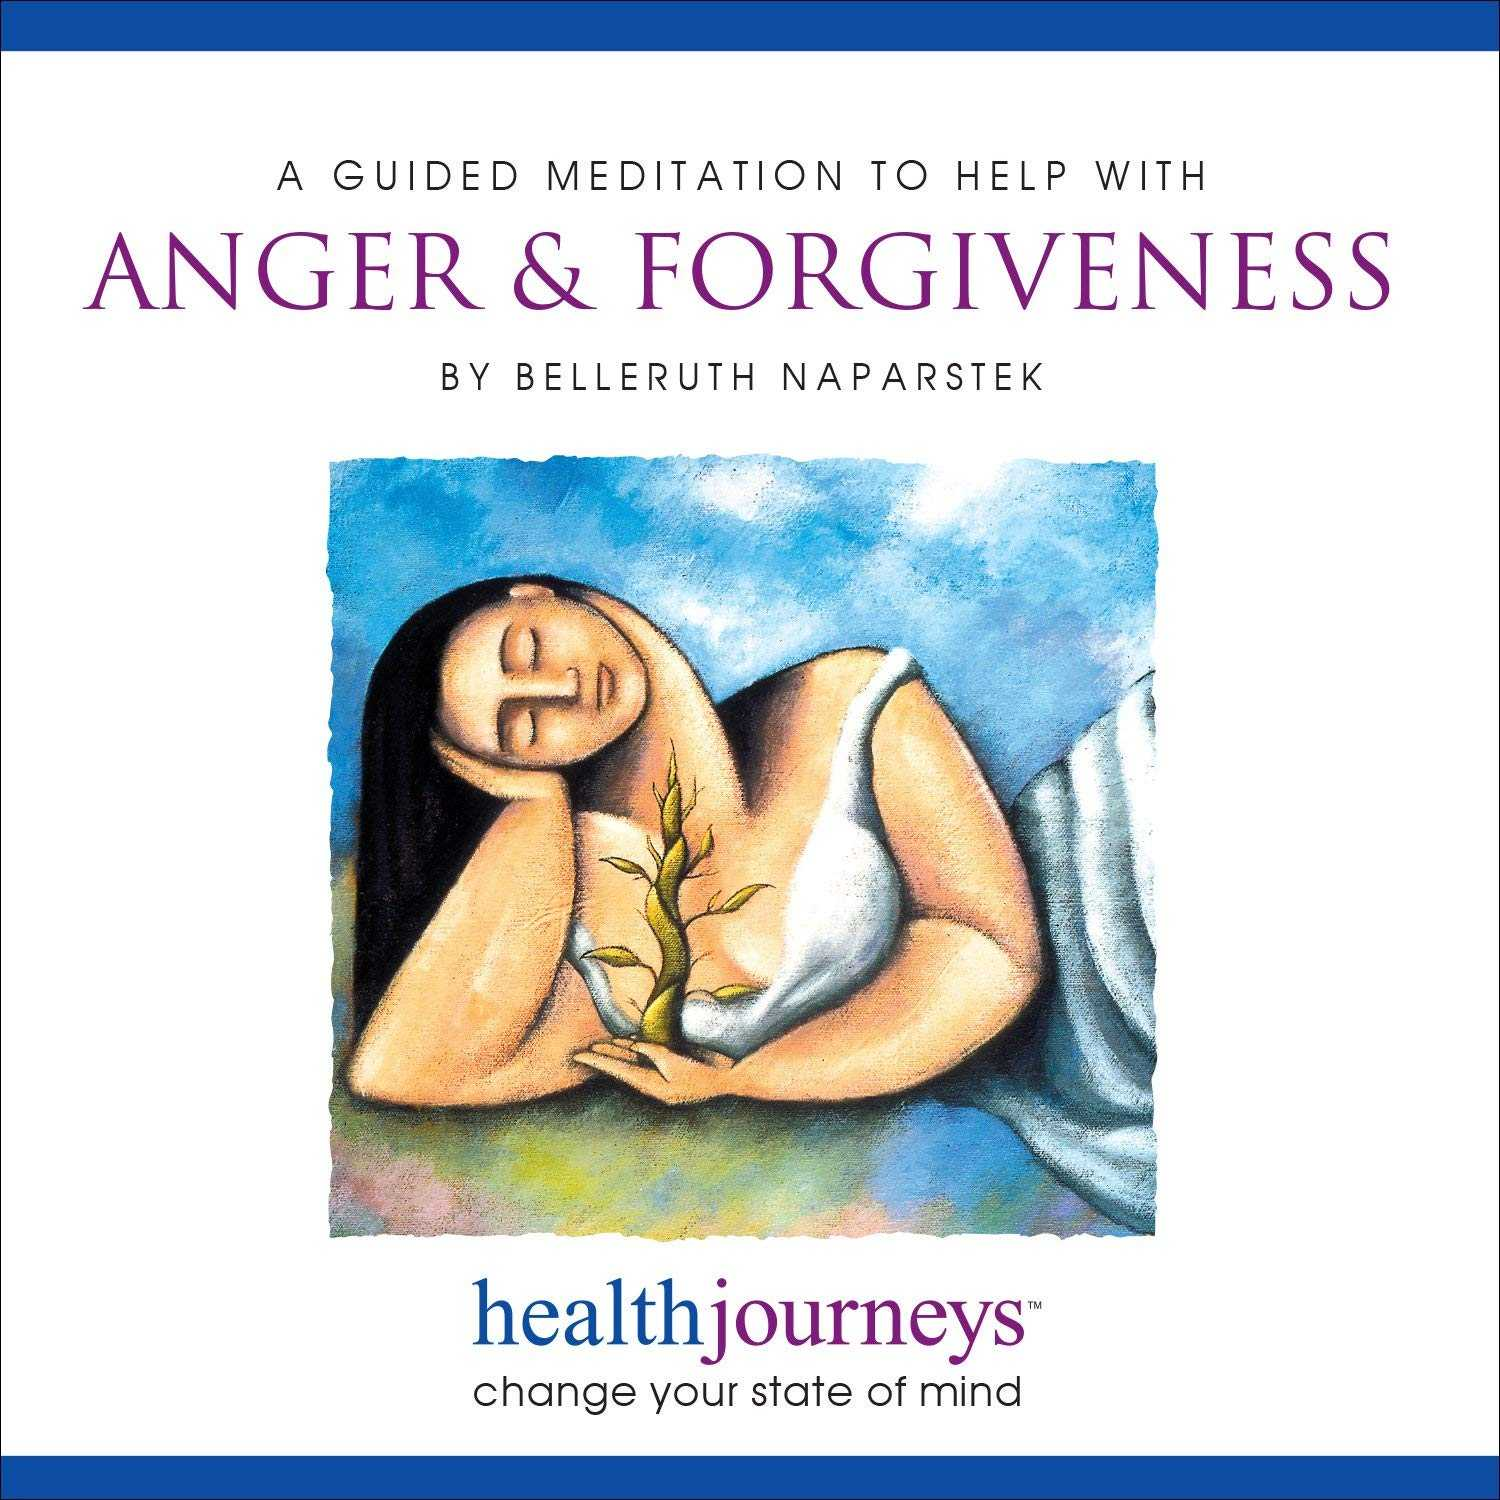 Grief and Loss Worksheets for Adults Also Belleruth Naparstek Meditation to Help Anger and forgiveness